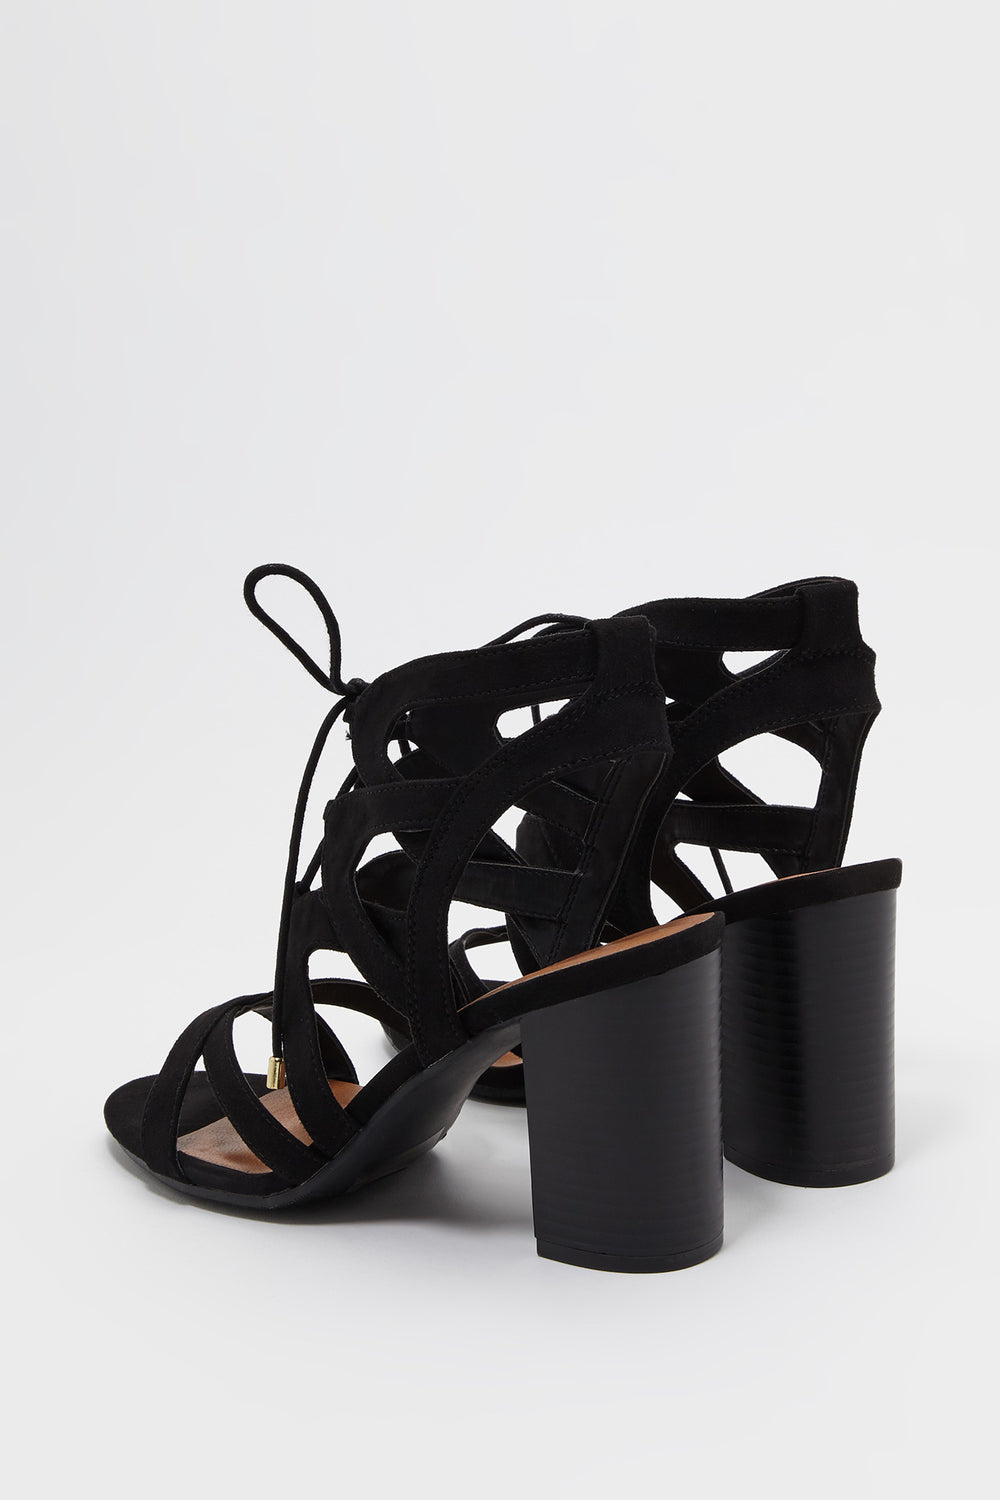 Lace Up Cut Out Faux-Suede Block Heel Sandal Black